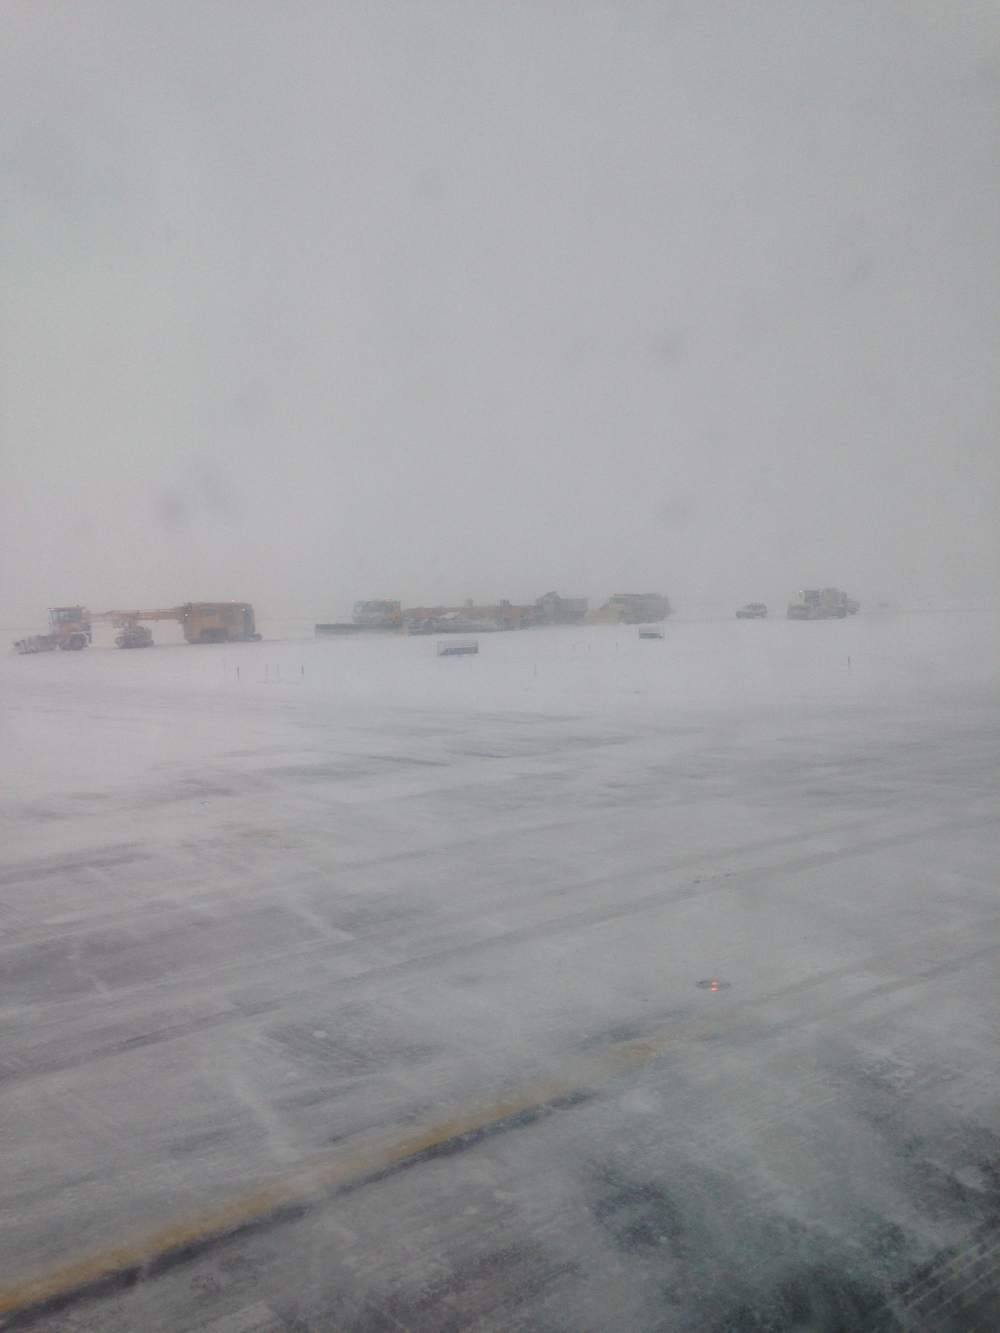 The (in)visibility on the JFK runway, Thursday at 2:30 PM, as seen from the airplane window.